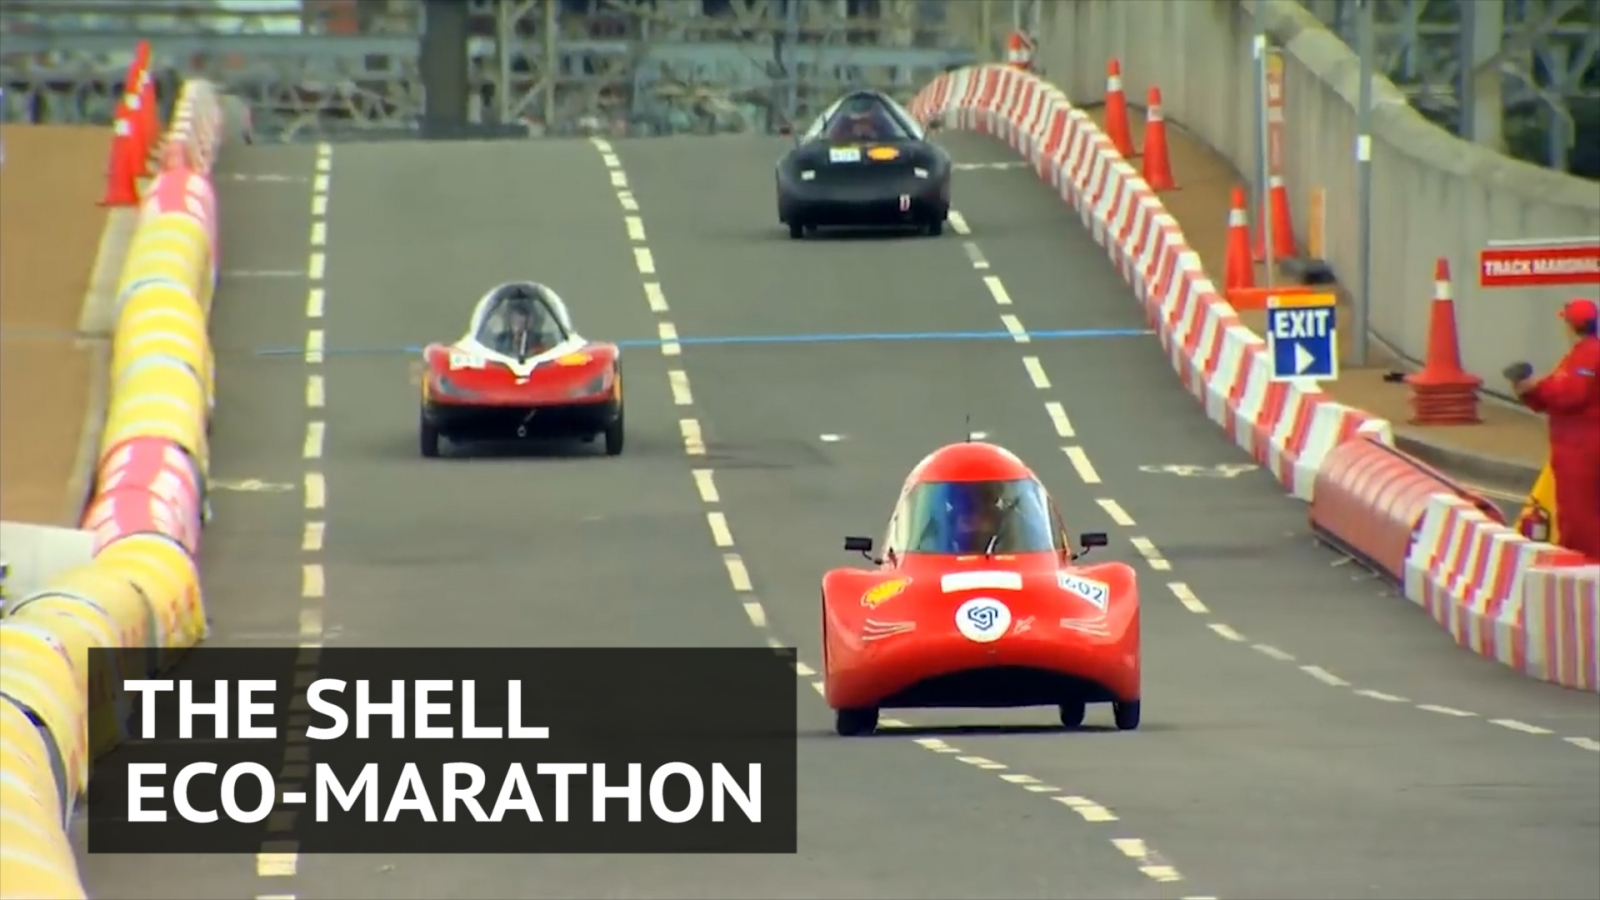 the-shell-eco-marathon-where-students-race-against-the-fuel-gauge-not-the-stopwatch